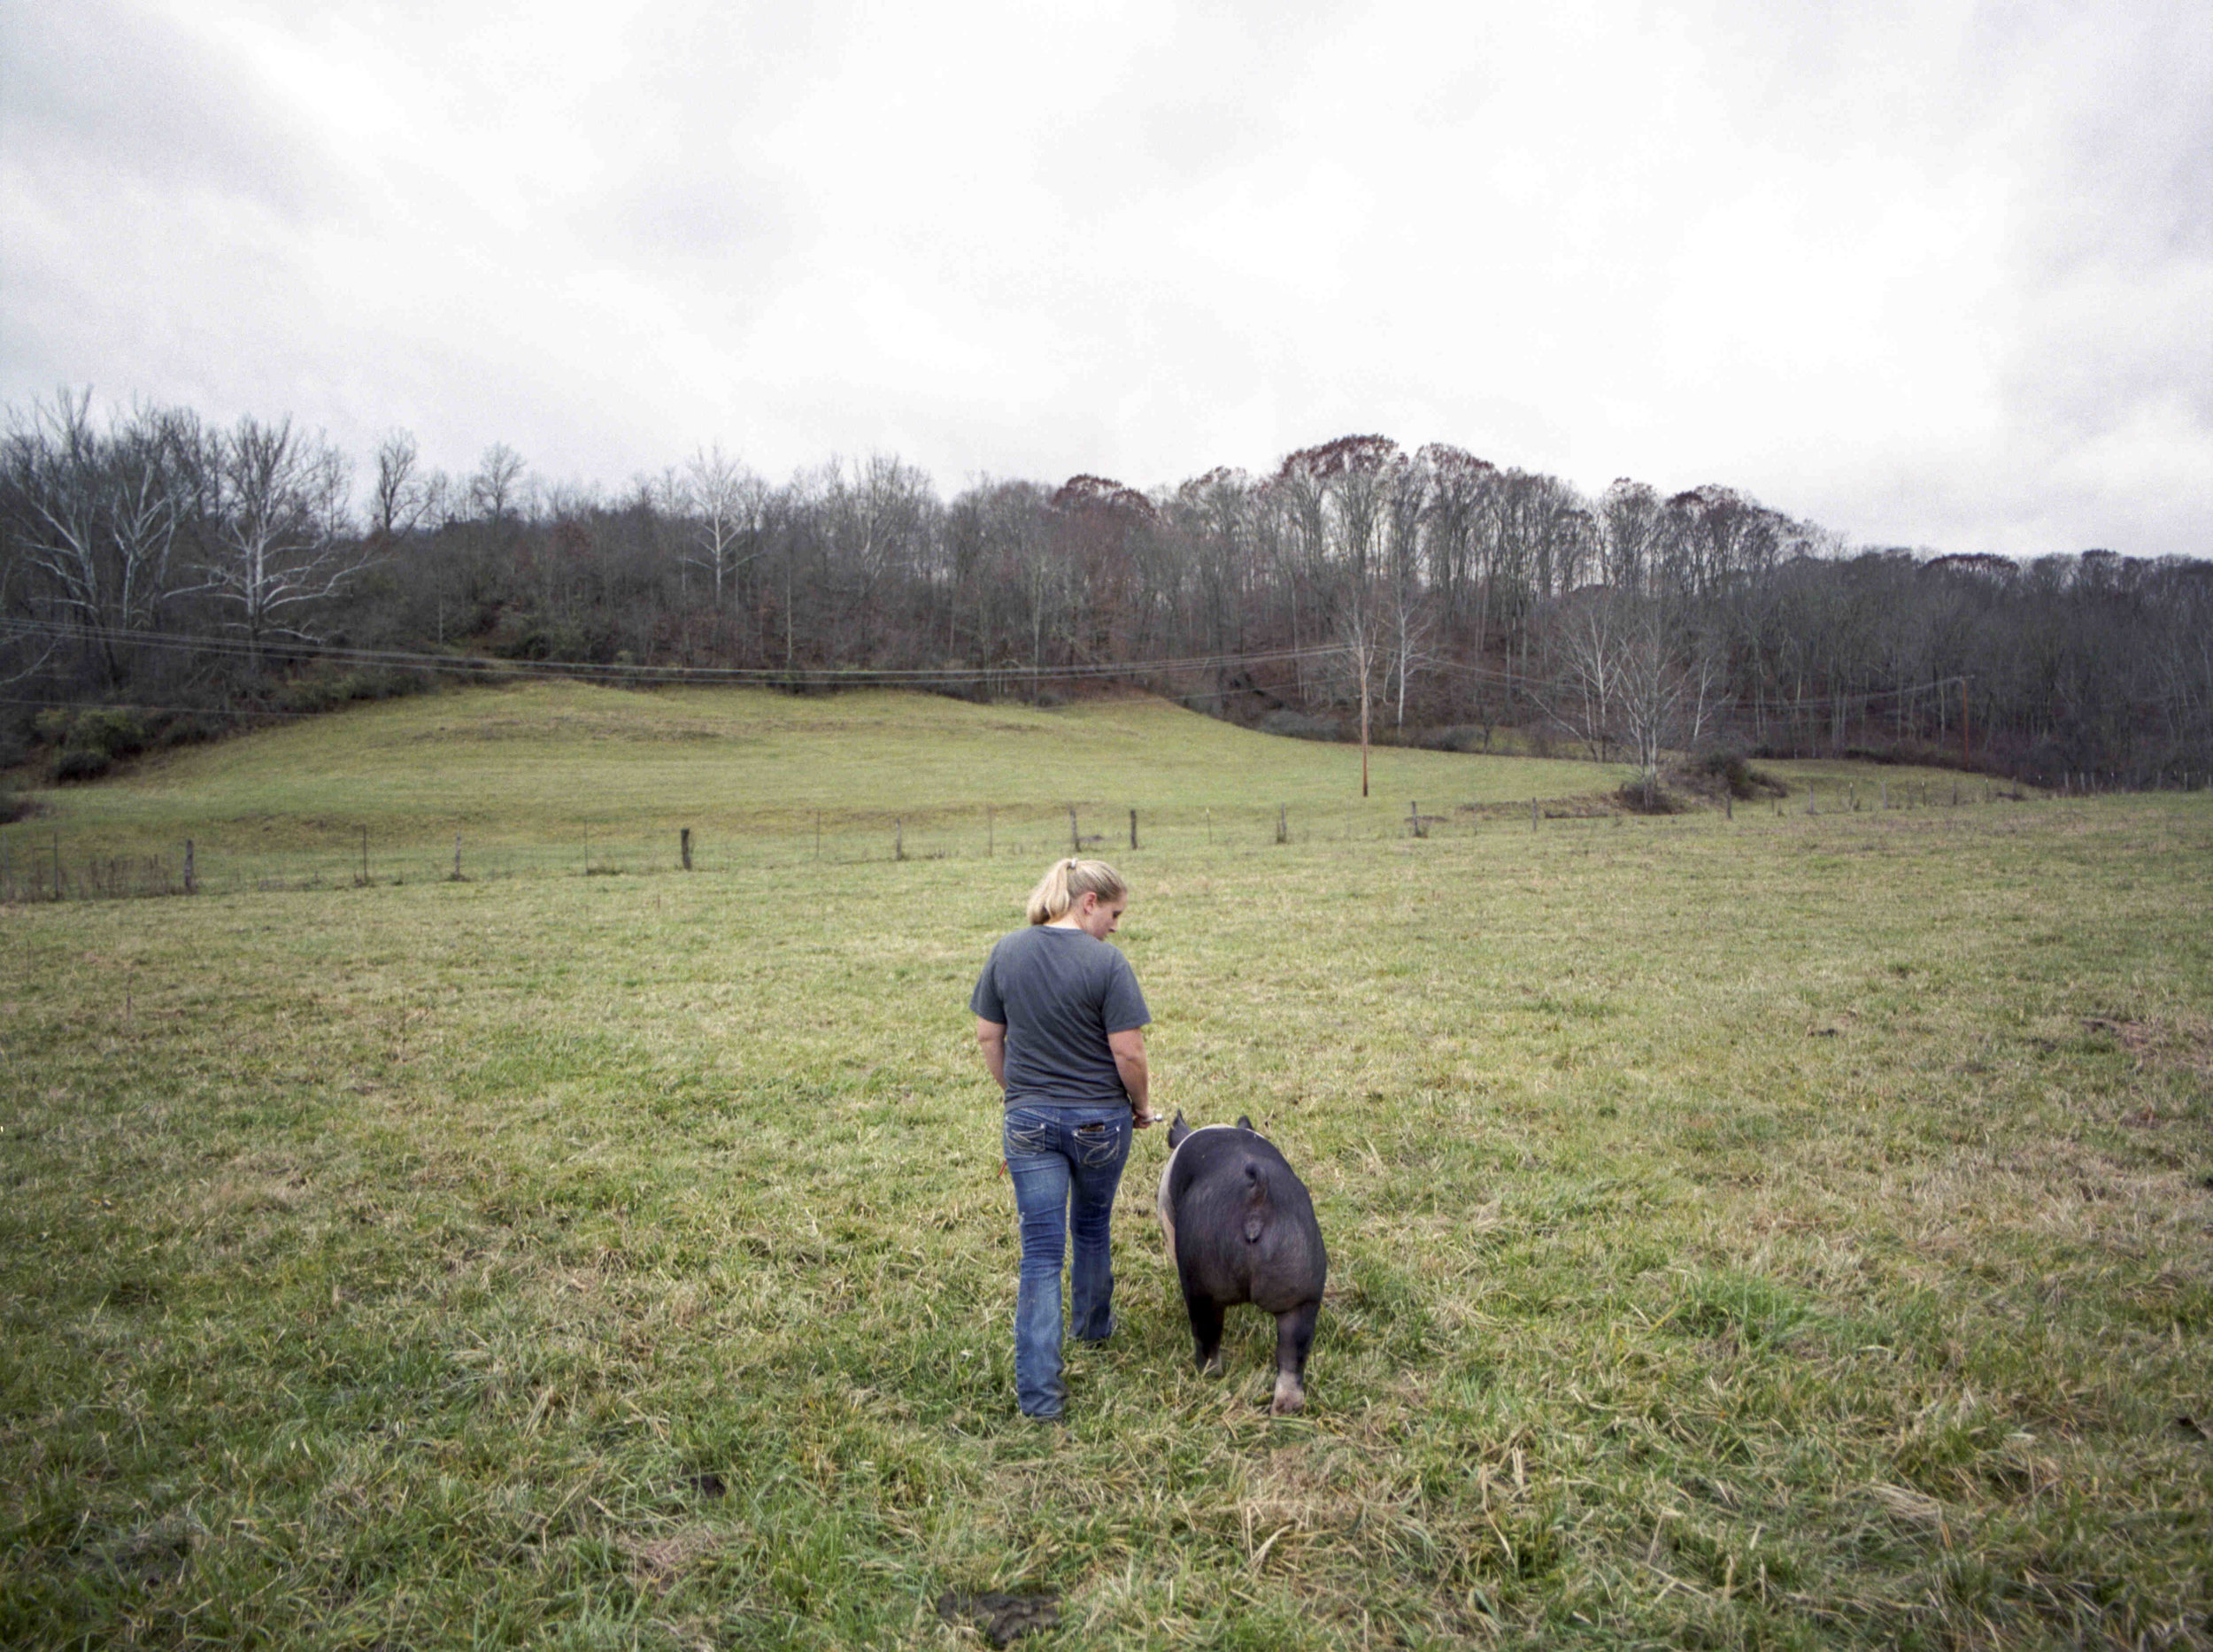 Emily Bush takes a walk with one of her pigs on her farm in rural Athens County, Ohio. - Shot on Fujifilm Pro 400 (120)